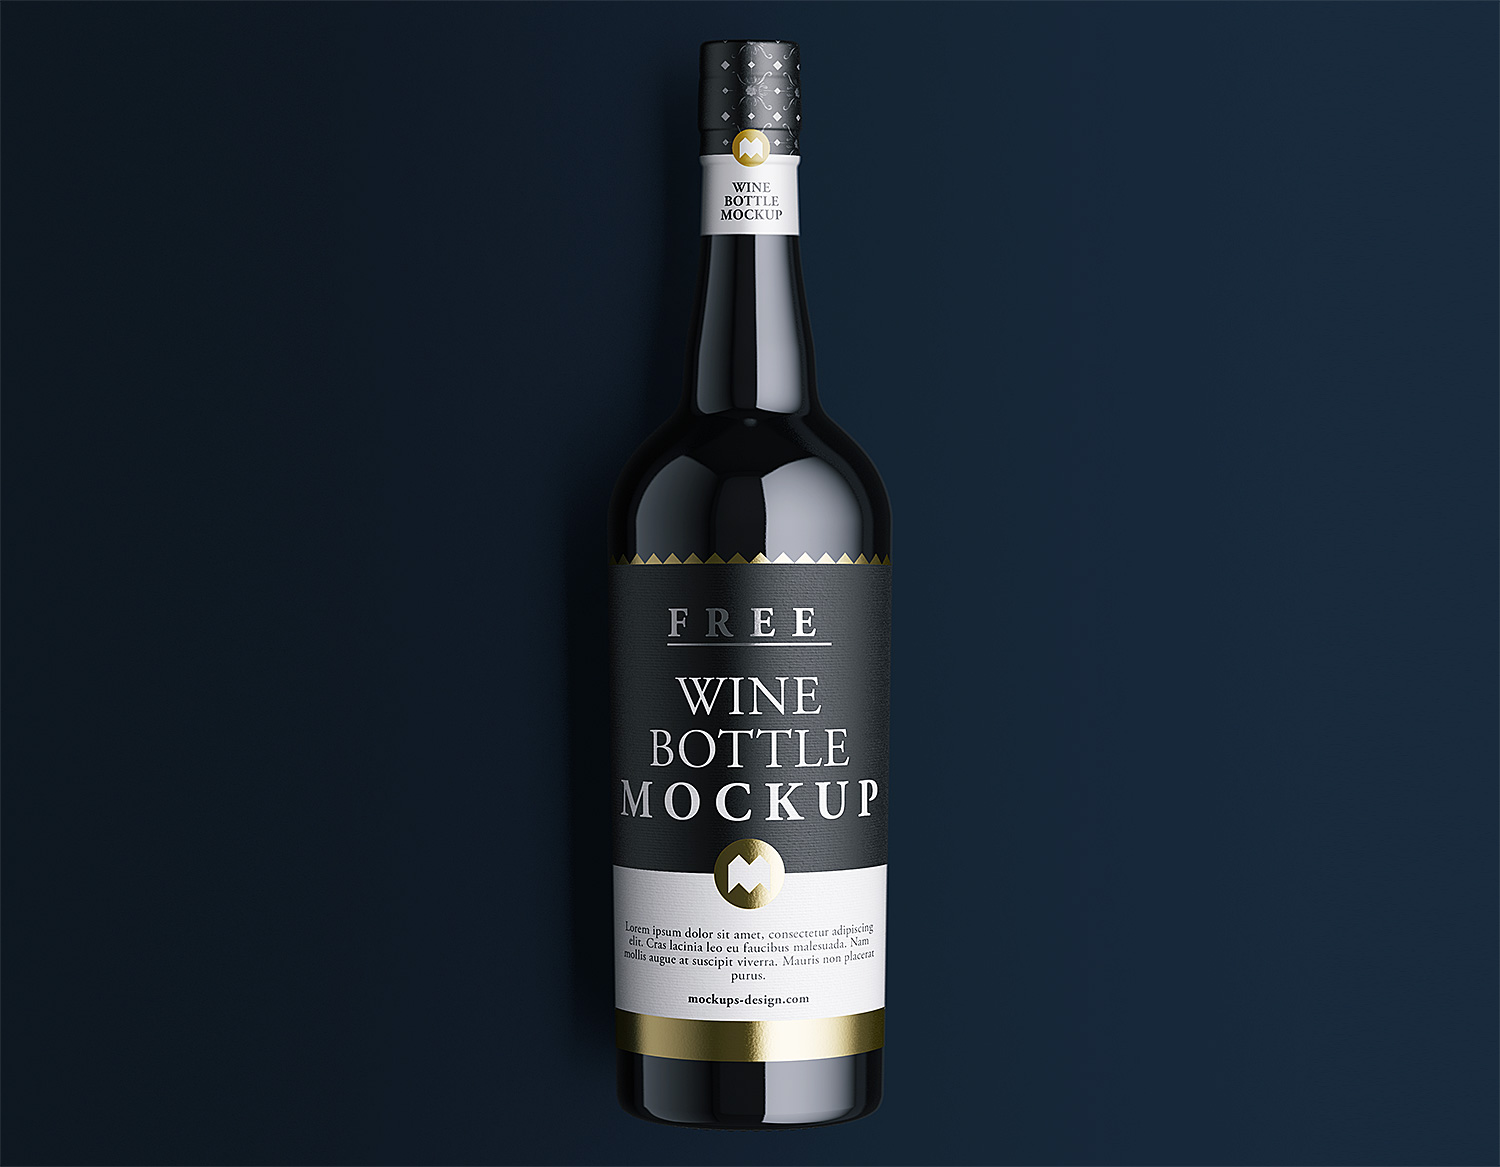 Wine-Bottle-Mockup-Free-03